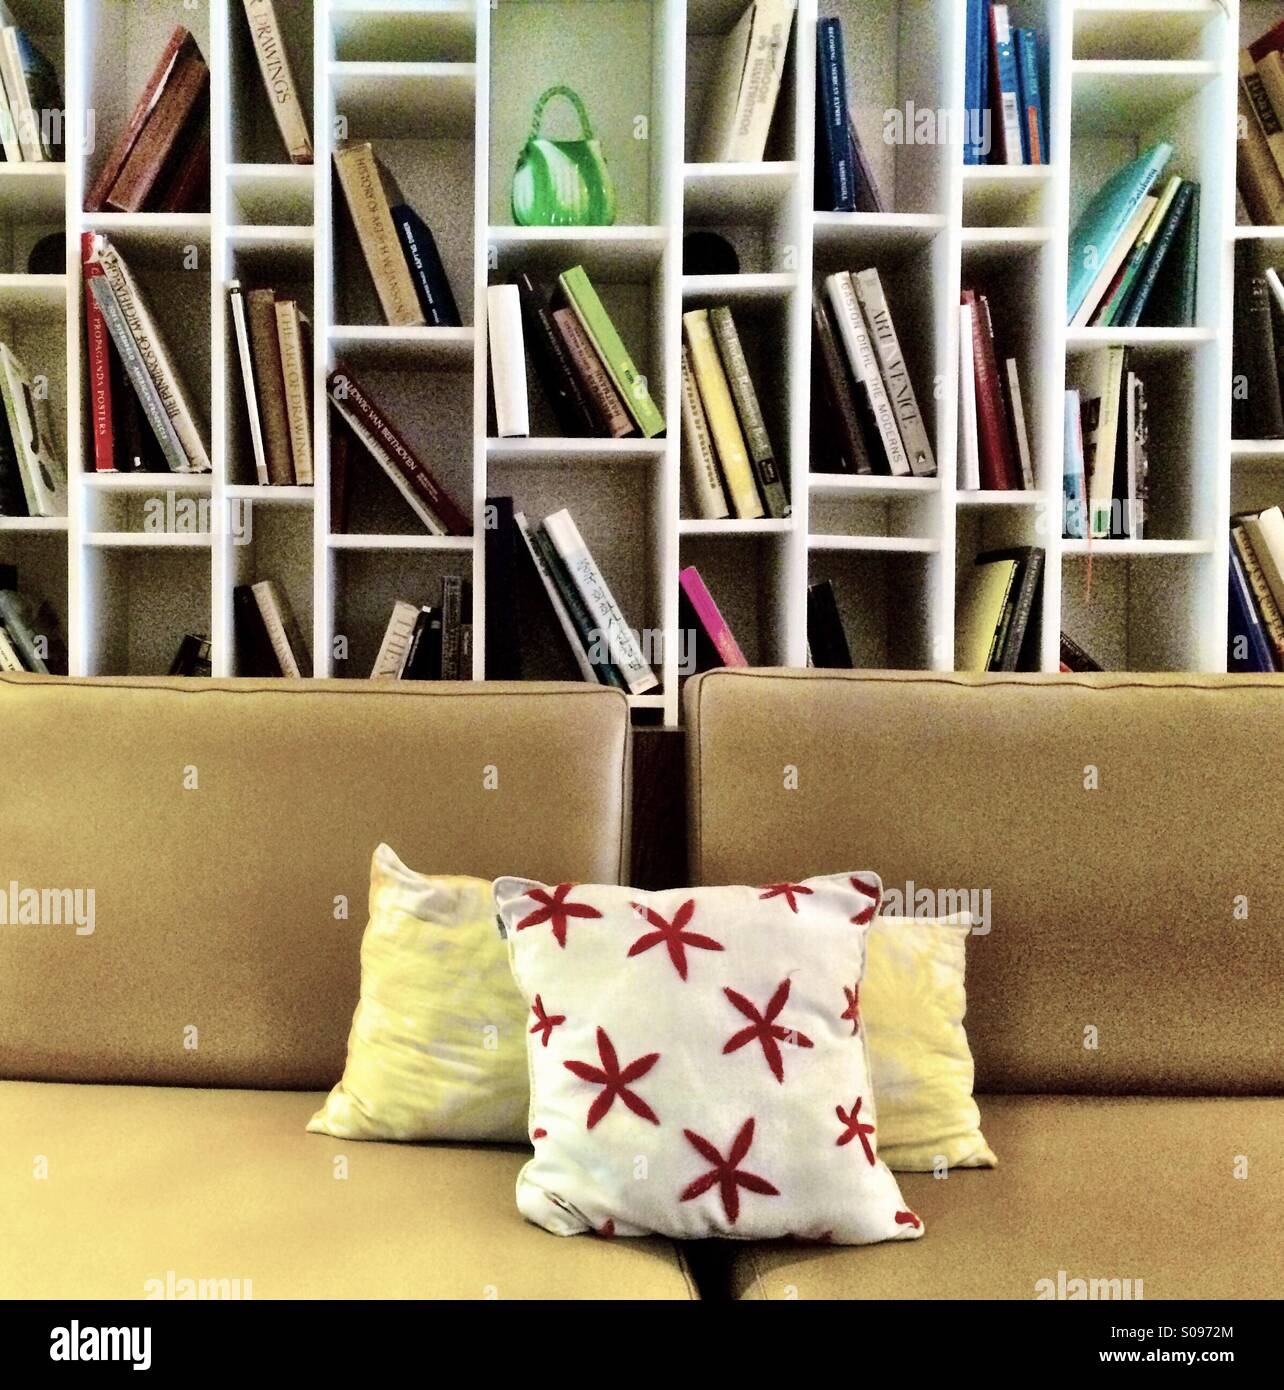 Bookshelf and sofa in boutique hotel, Postcard Inn, Florida - Stock Image